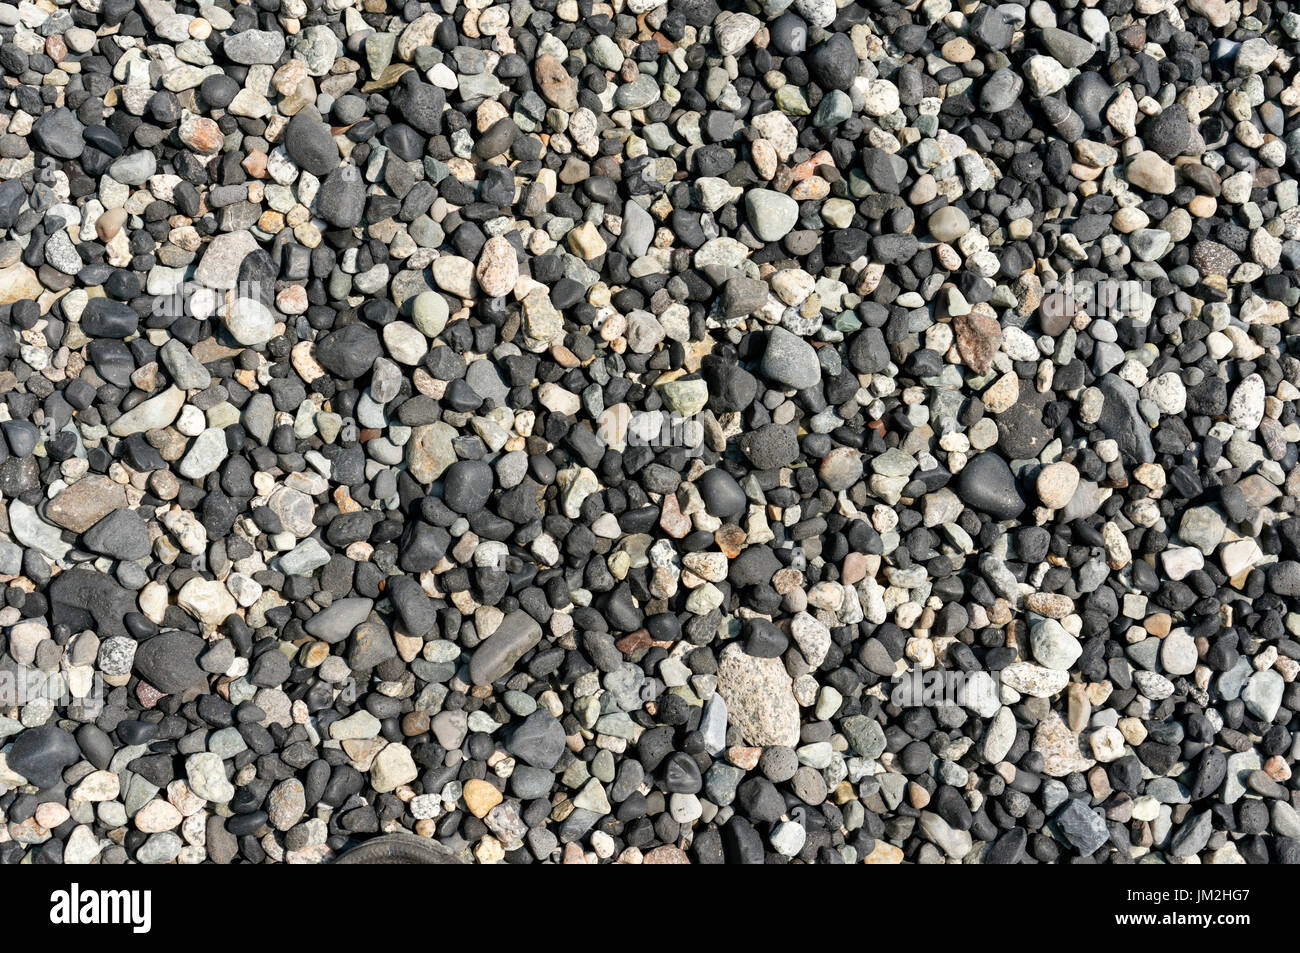 Close-up of multicolored rounded beach pebbles on a rocky beach on Bowen Island, British Columbia, Canada - Stock Image